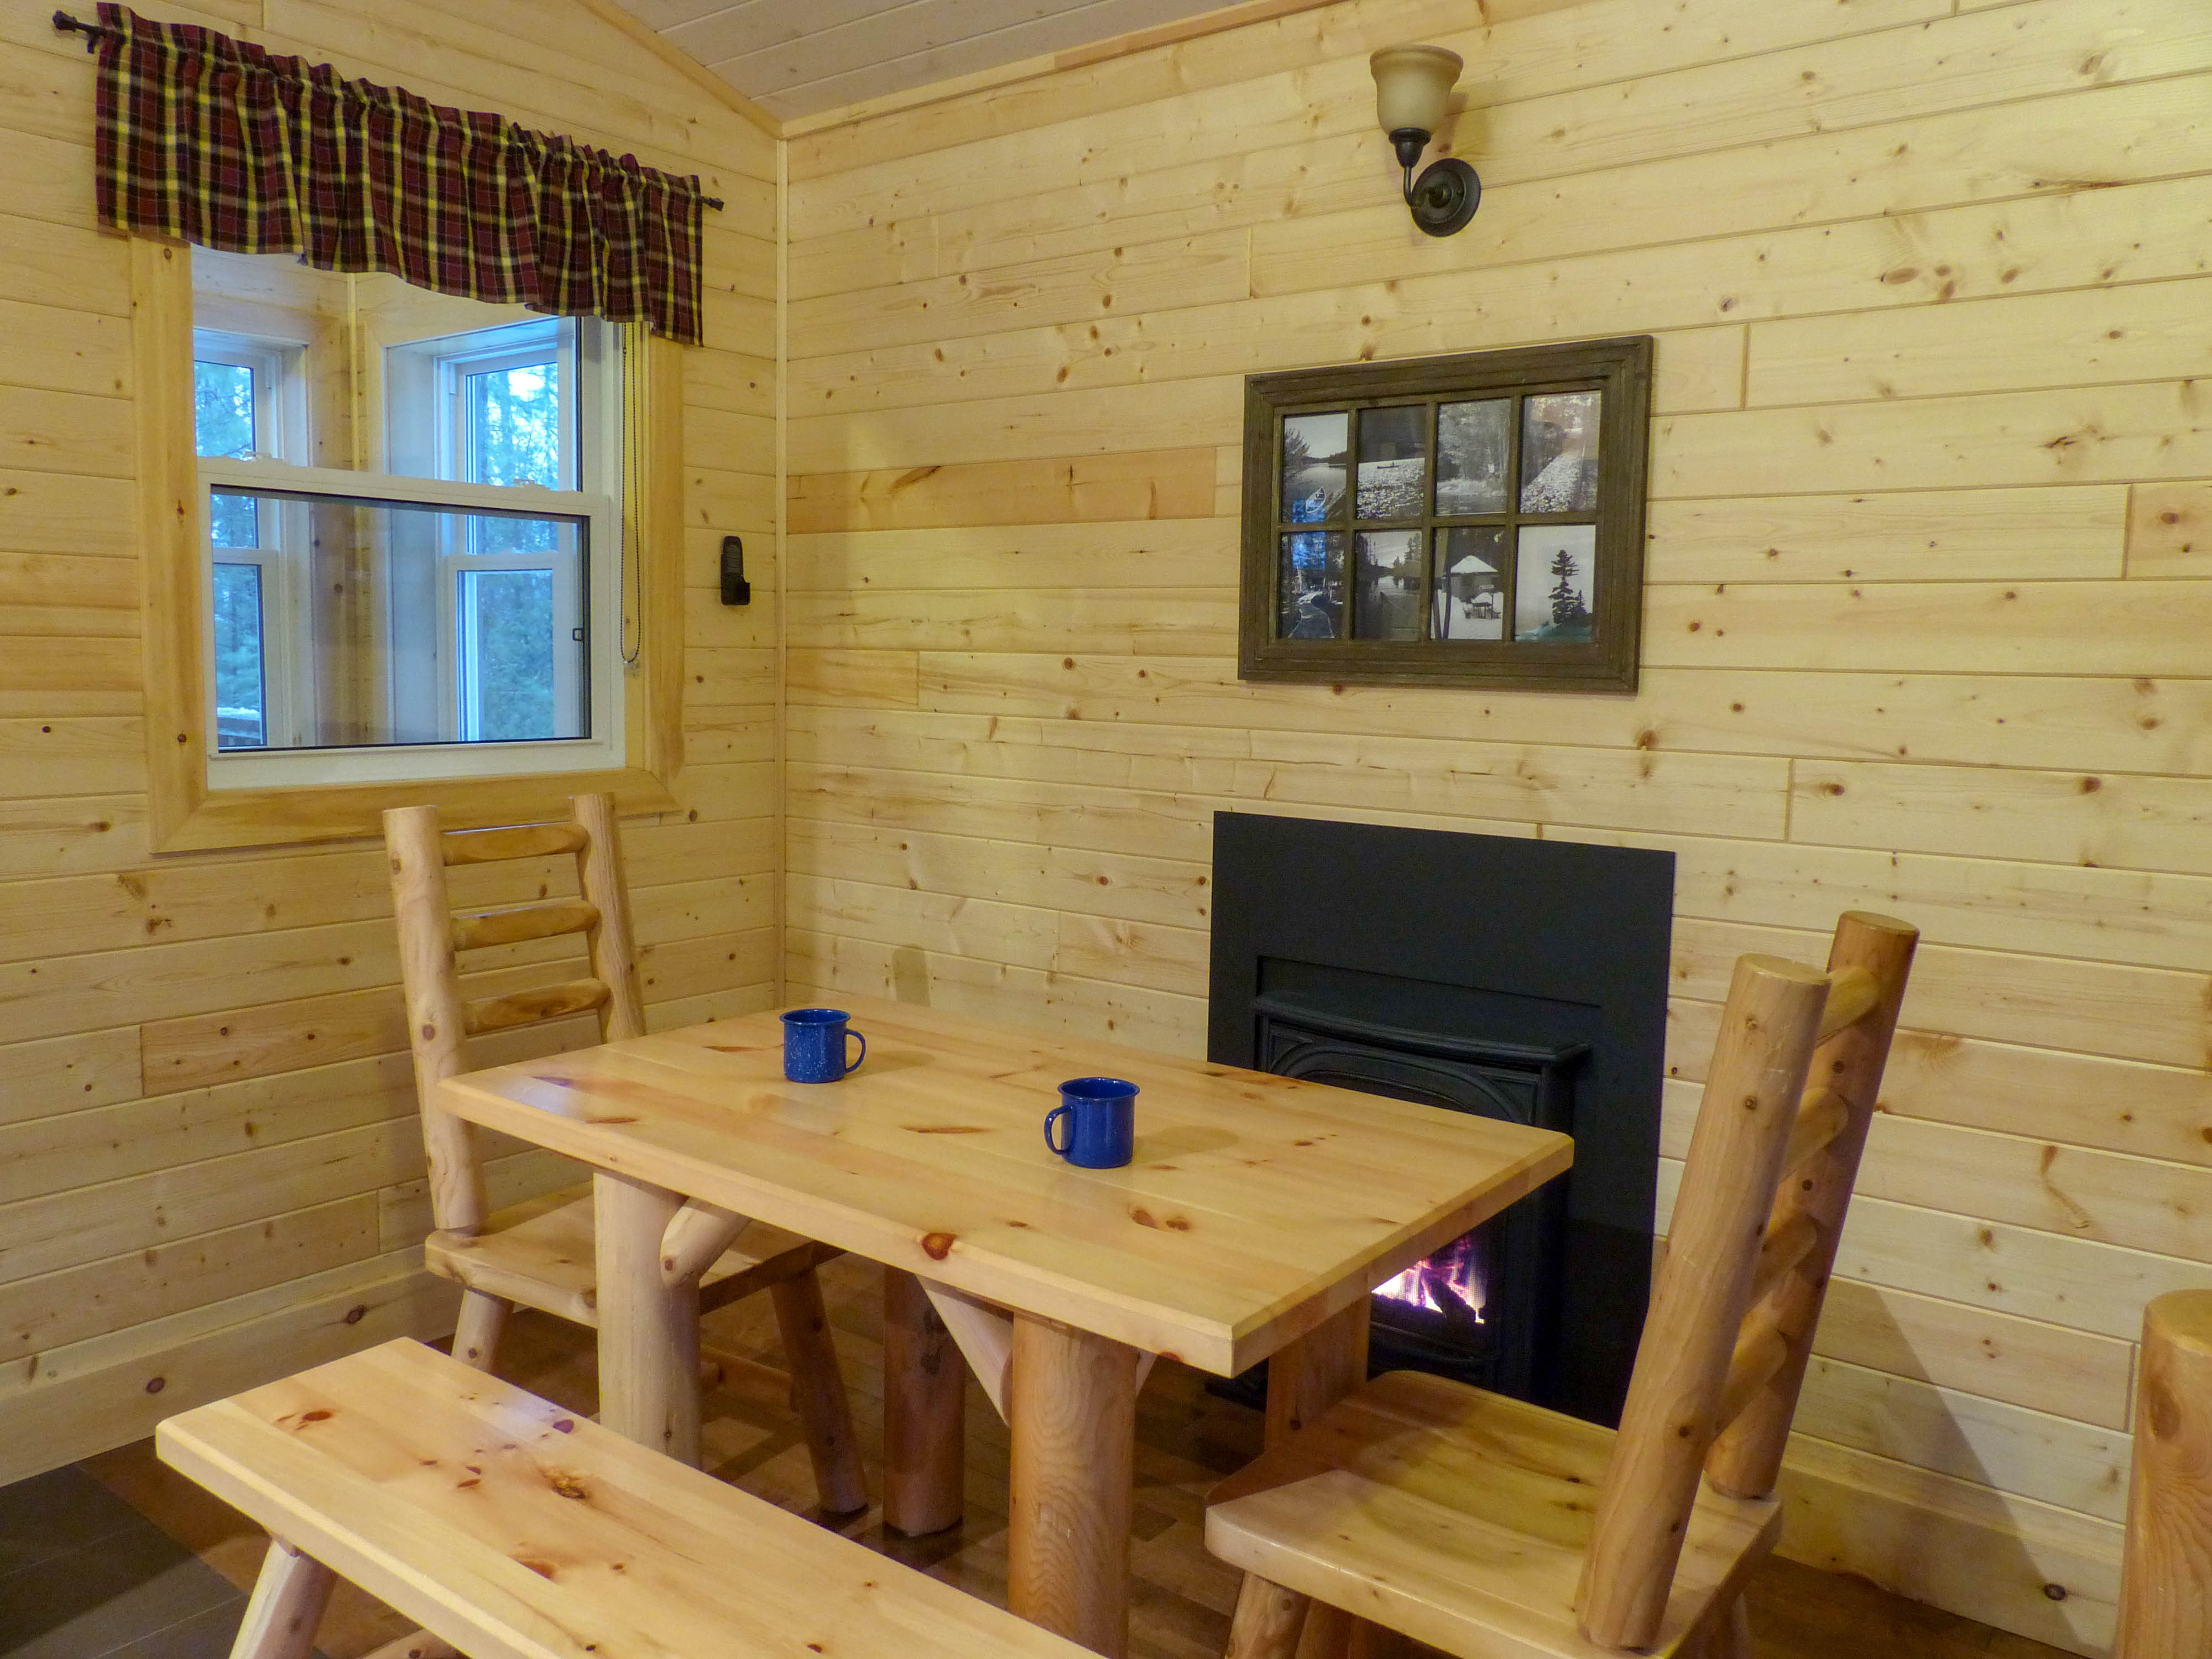 Silent Lake Provincial Park camp cabin interior